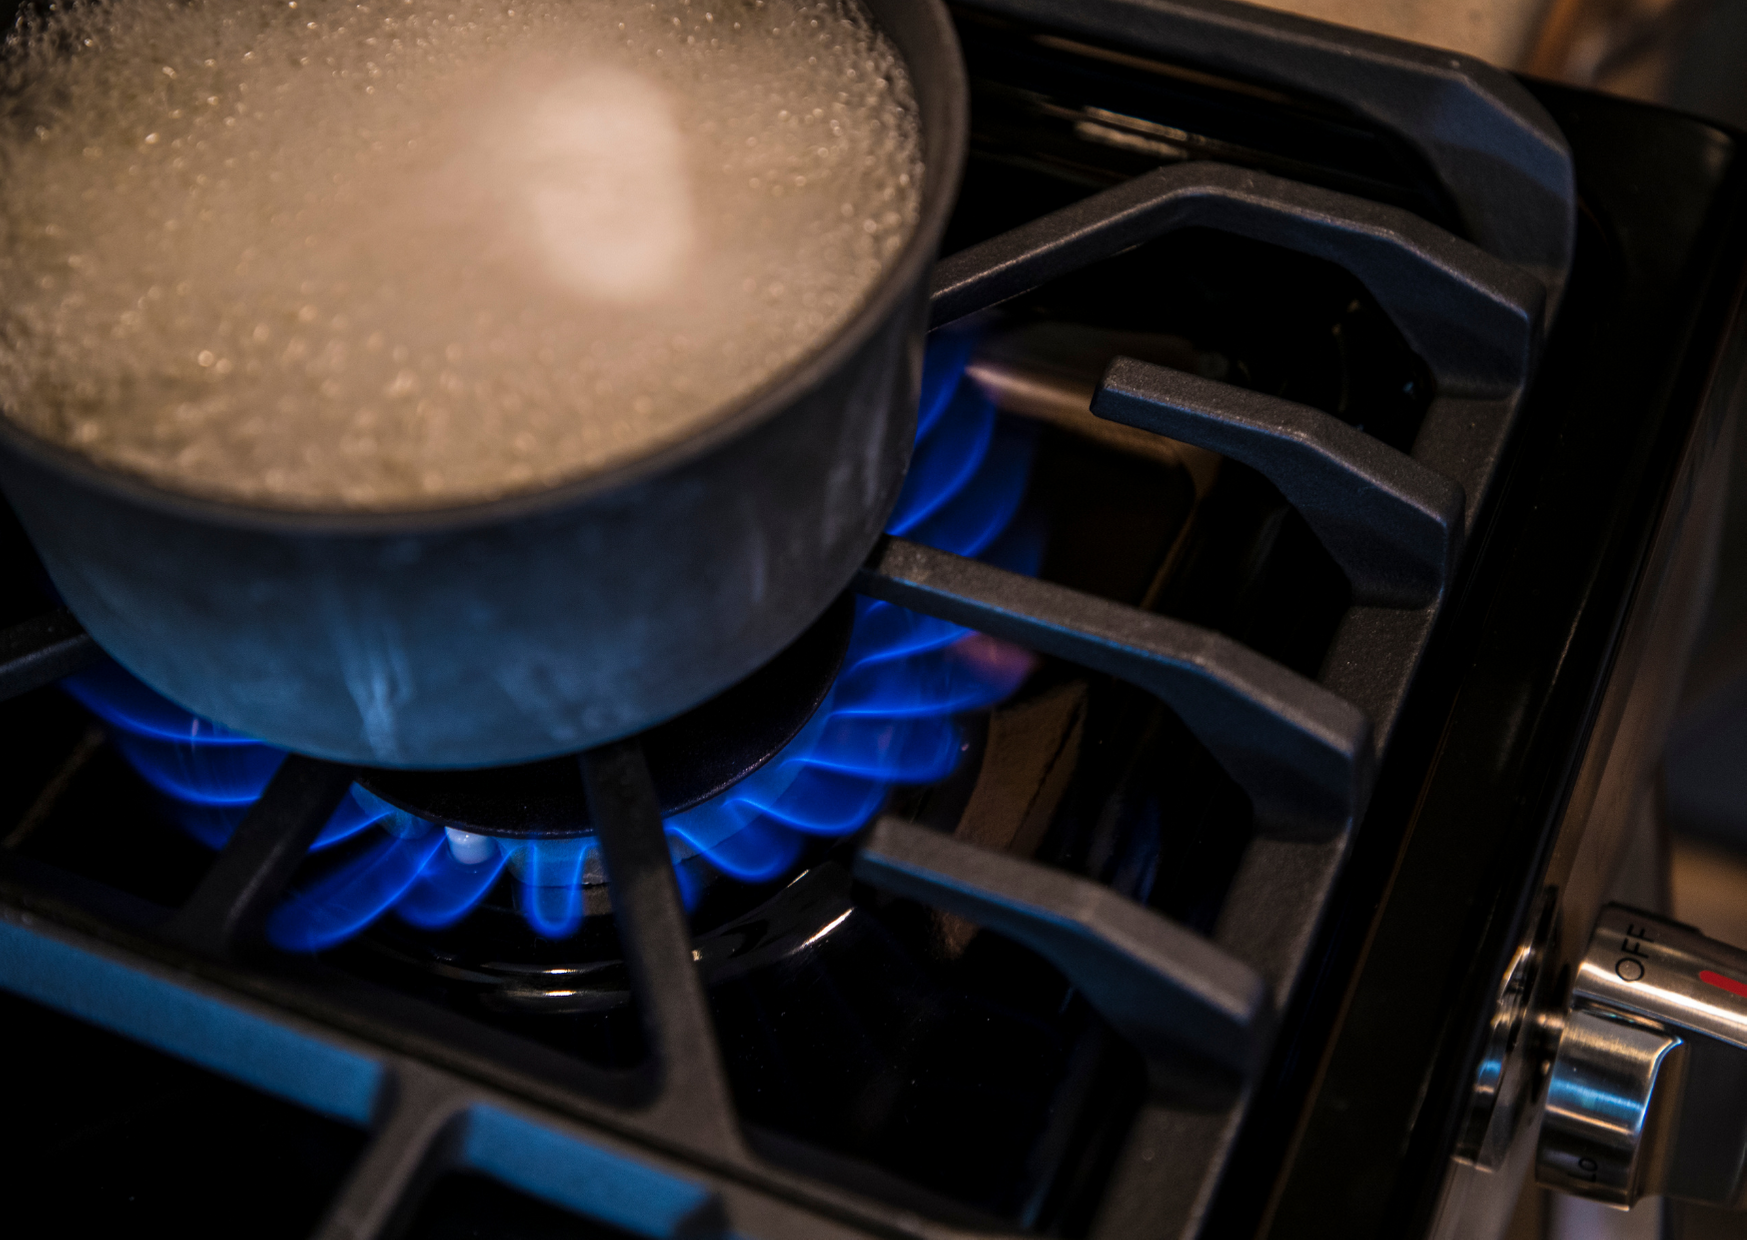 a boiling water in a pot under the stove